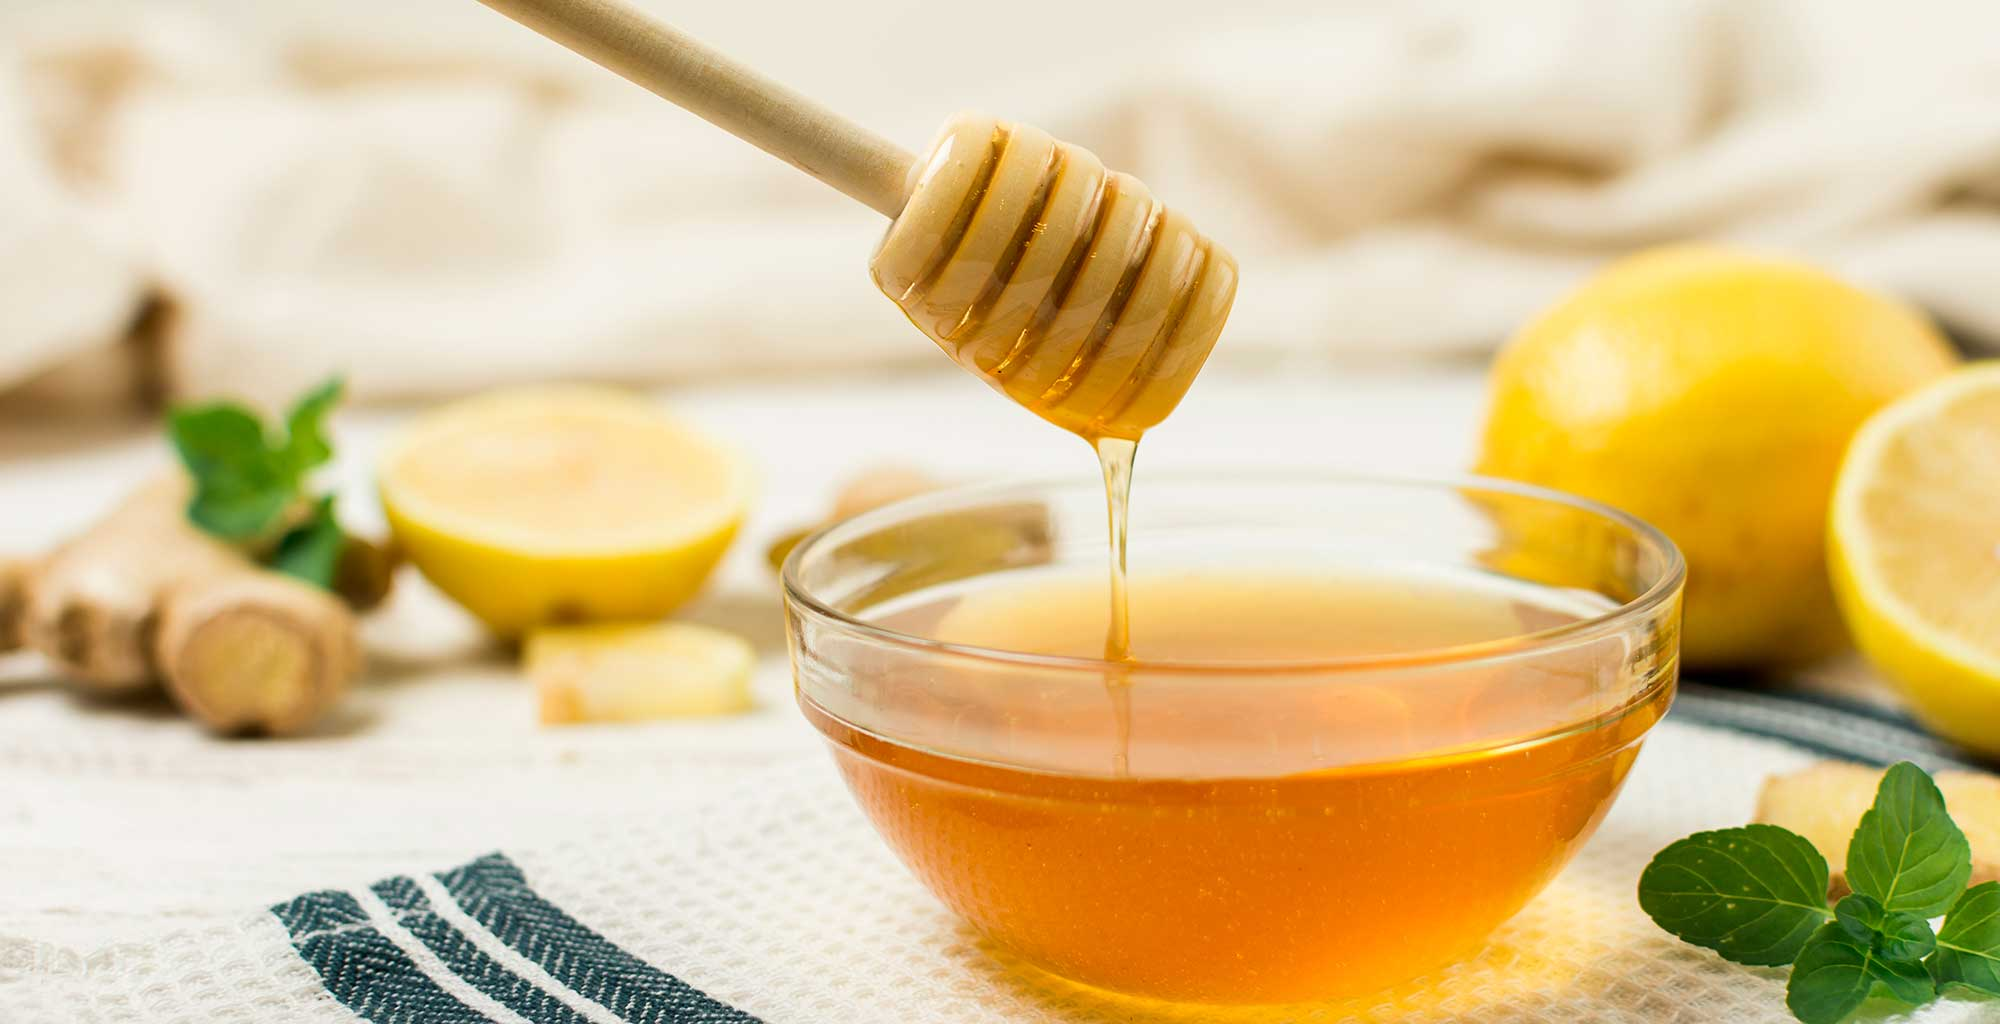 Mix the lemon, honey together and stir